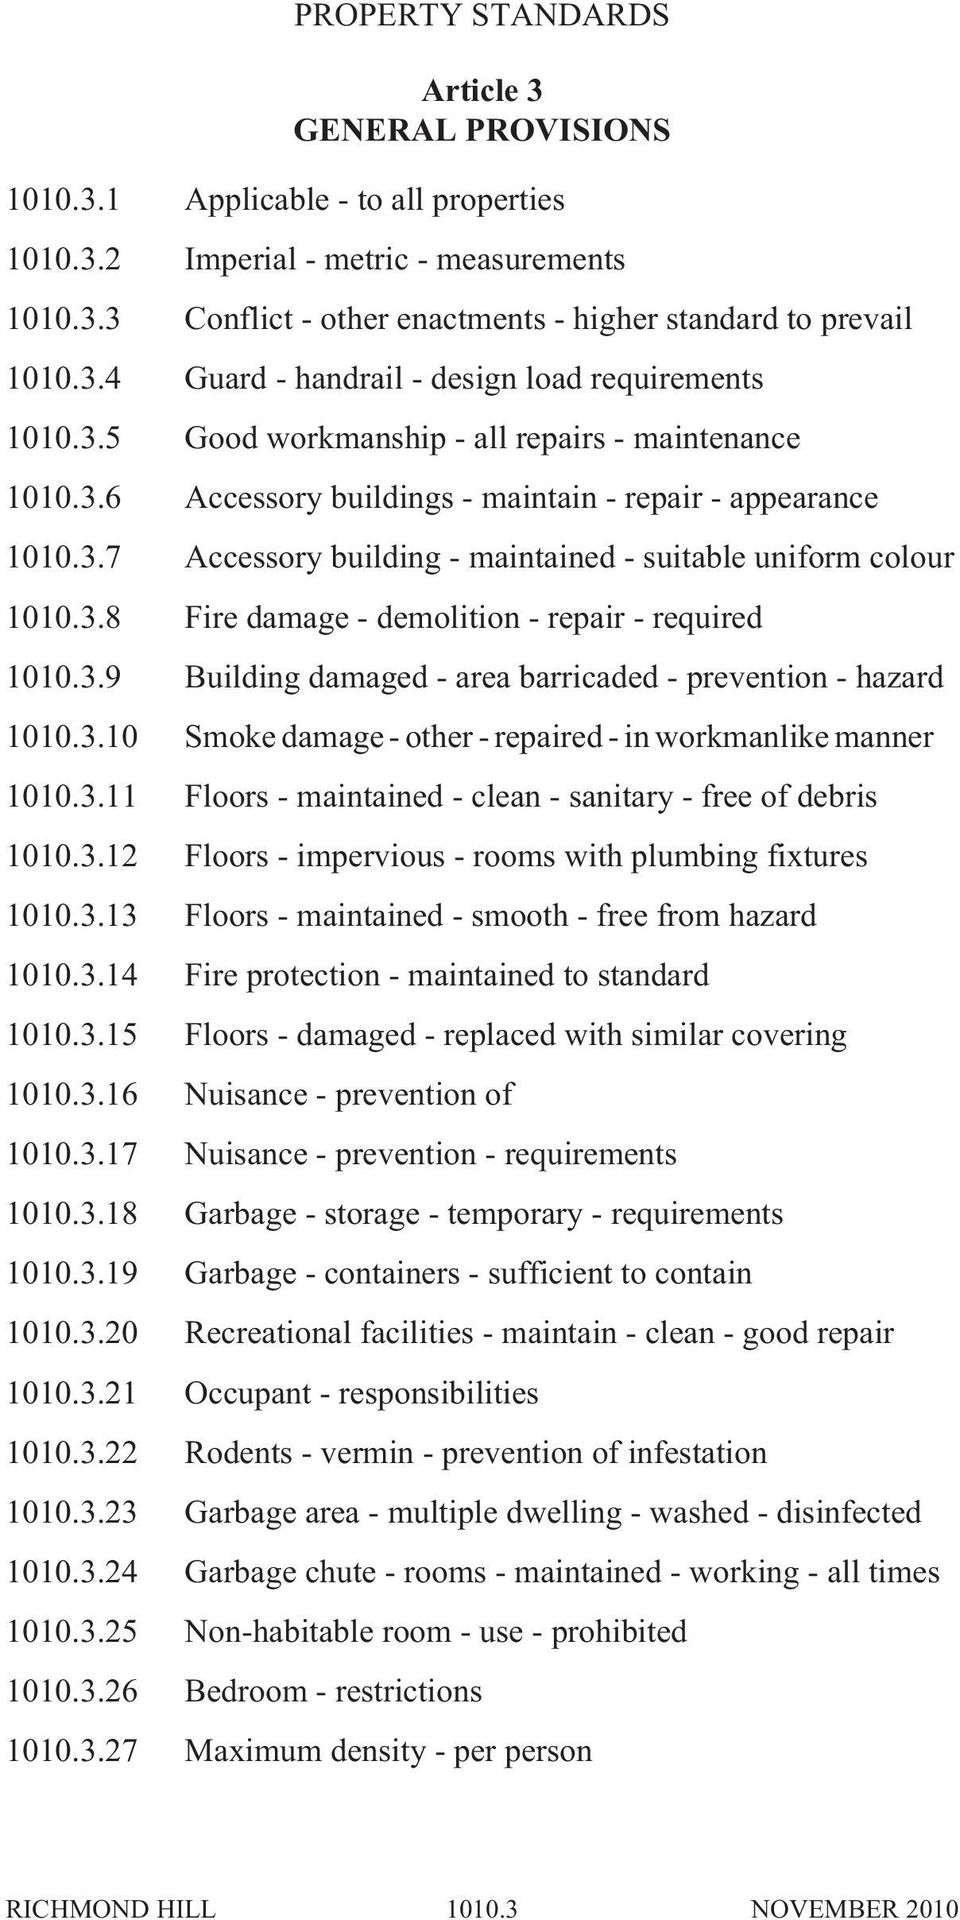 3.8 Fire damage - demolition - repair - required 1010.3.9 Building damaged - area barricaded - prevention - hazard 1010.3.10 Smoke damage - other - repaired - in workmanlike manner 1010.3.11 Floors - maintained - clean - sanitary - free of debris 1010.